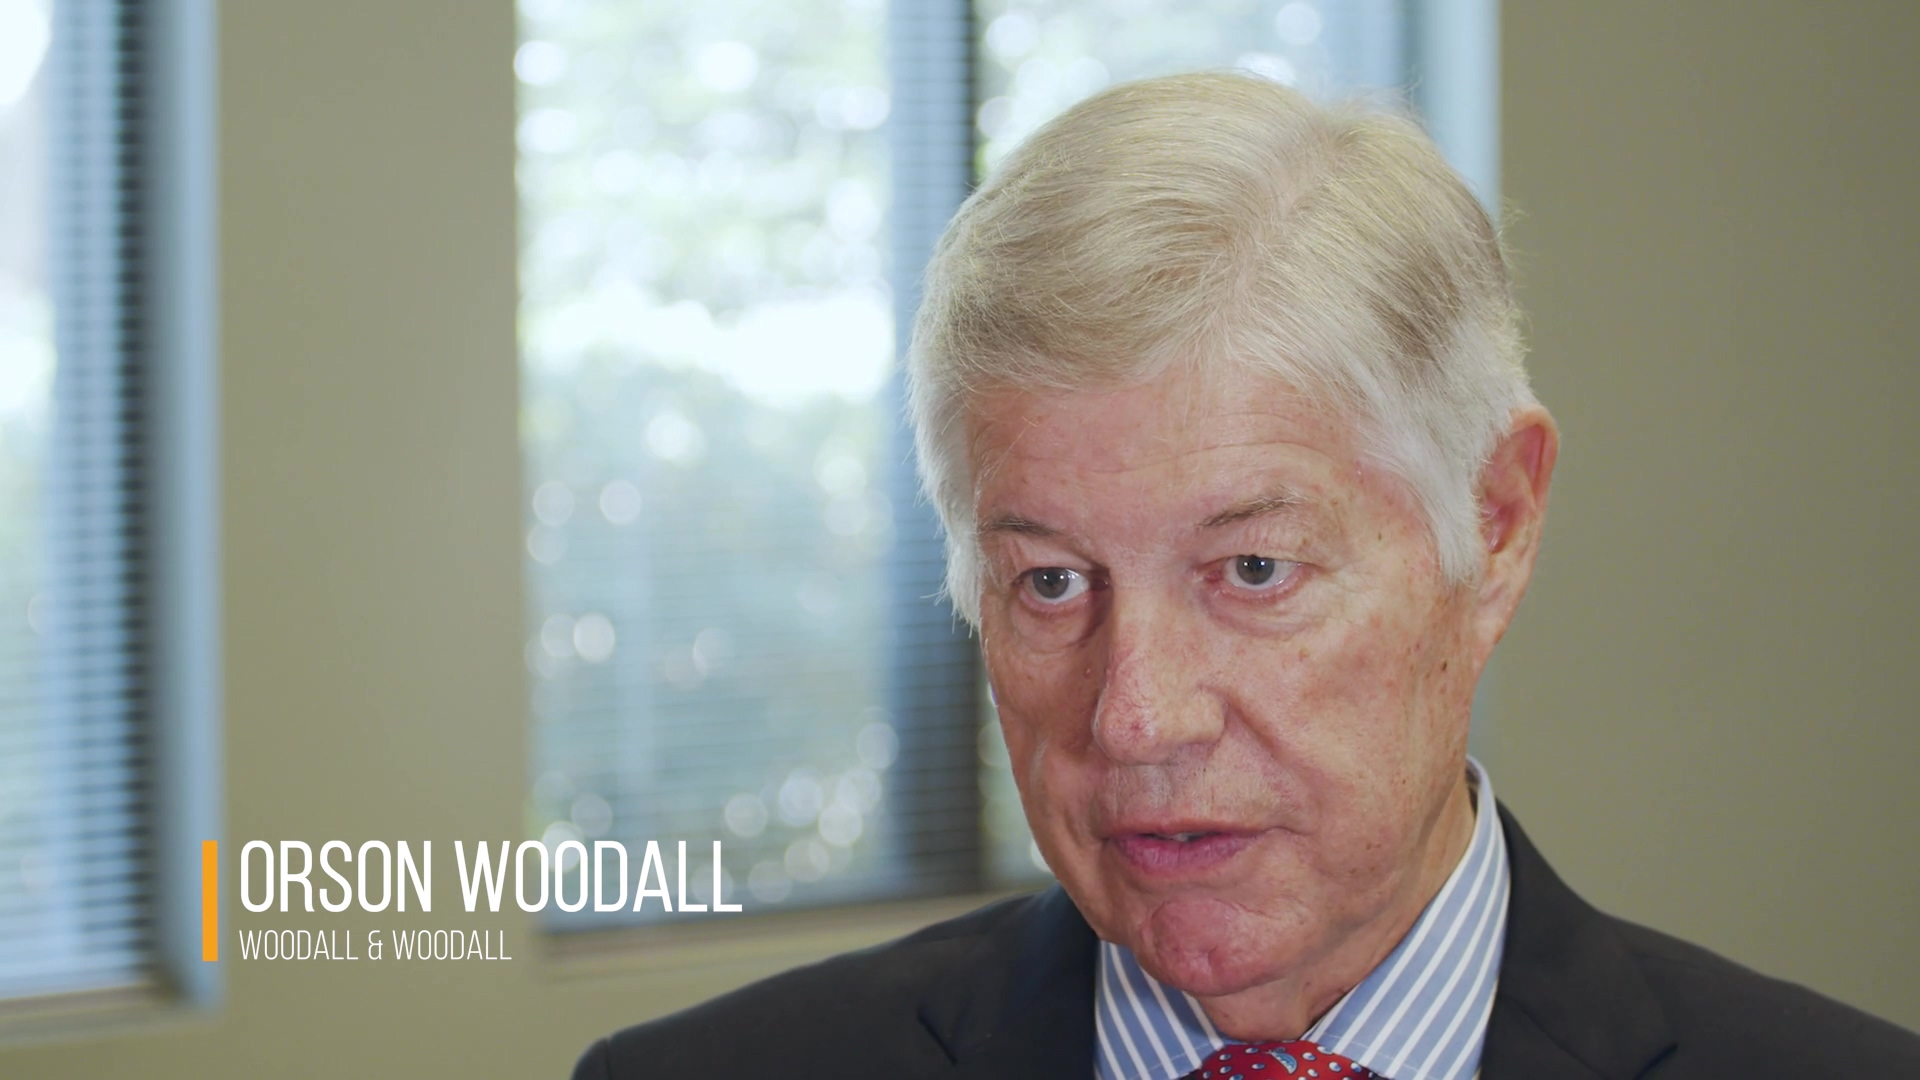 Why Choose Woodall and Woodall